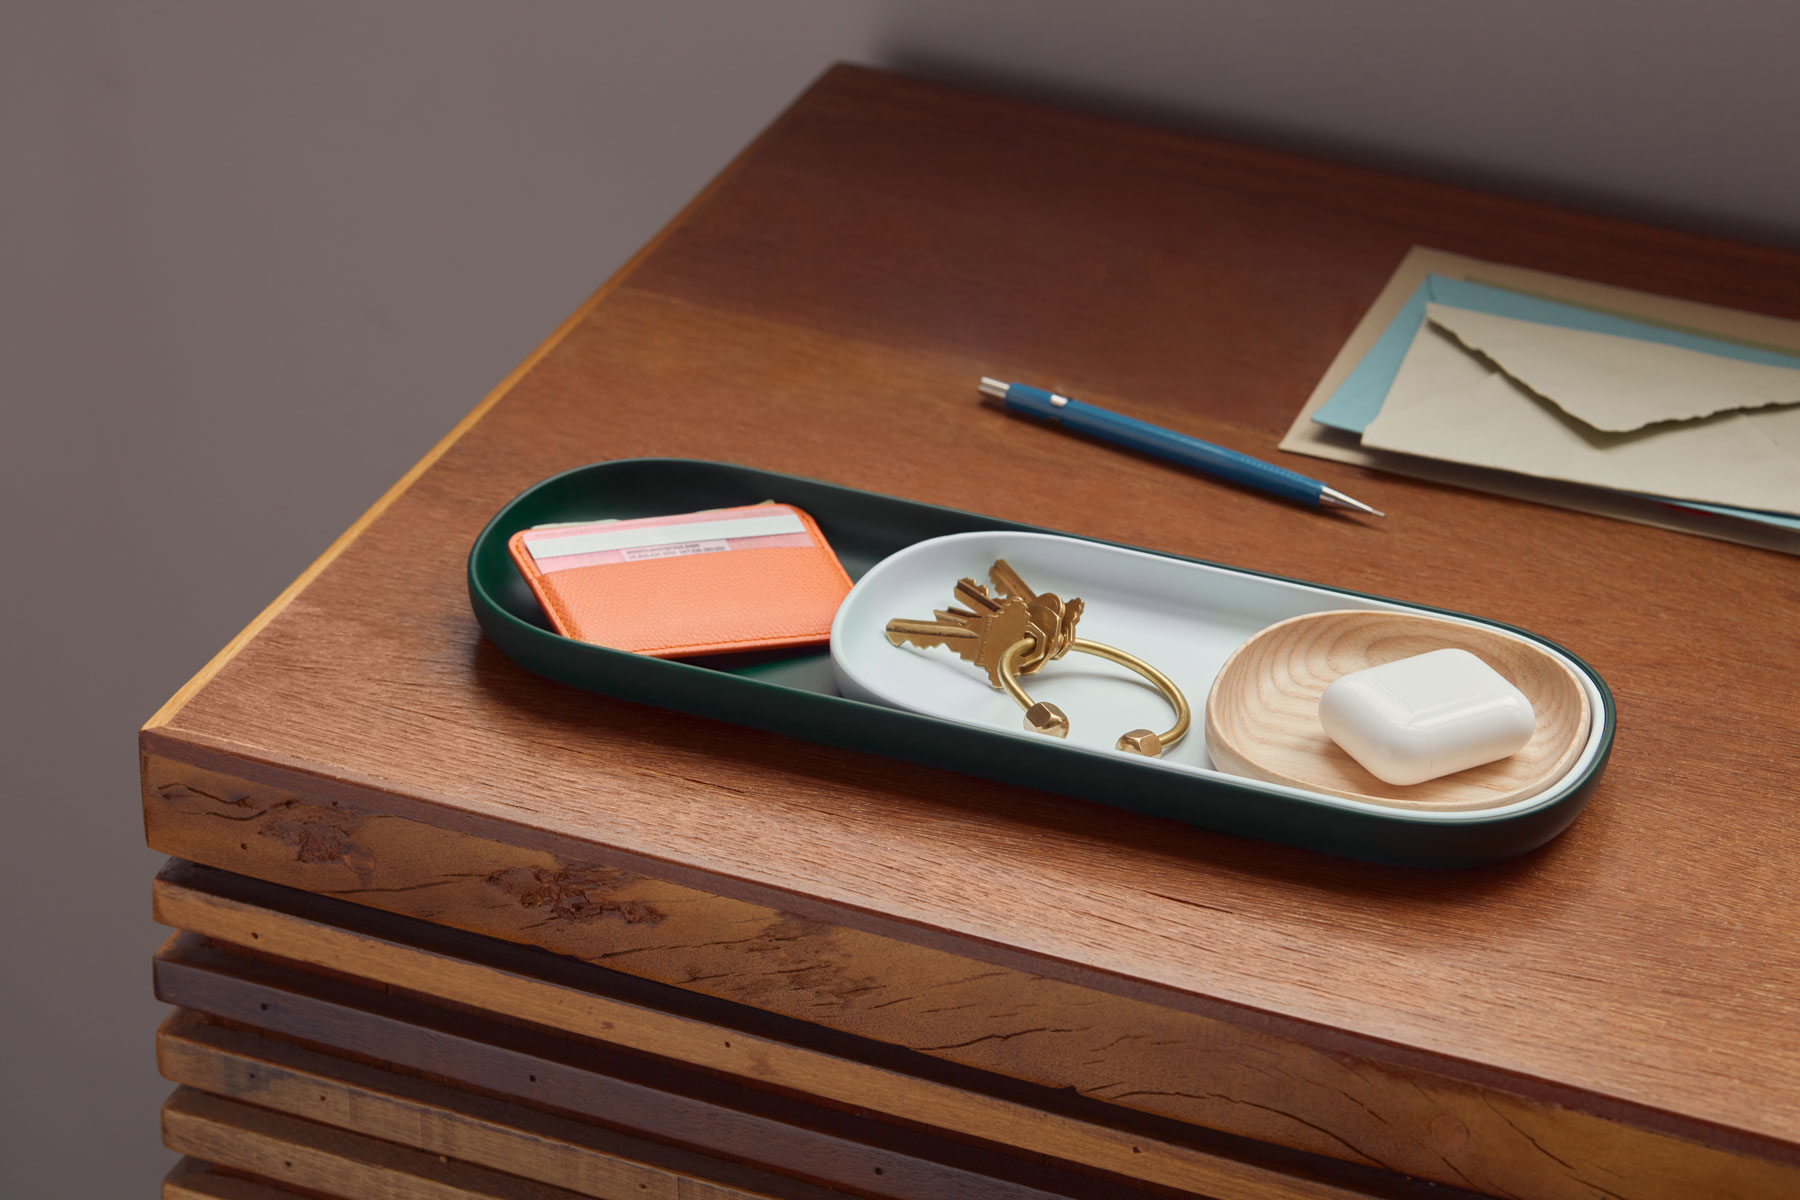 Best hostess gifts, ideas - Open Spaces nesting trays set